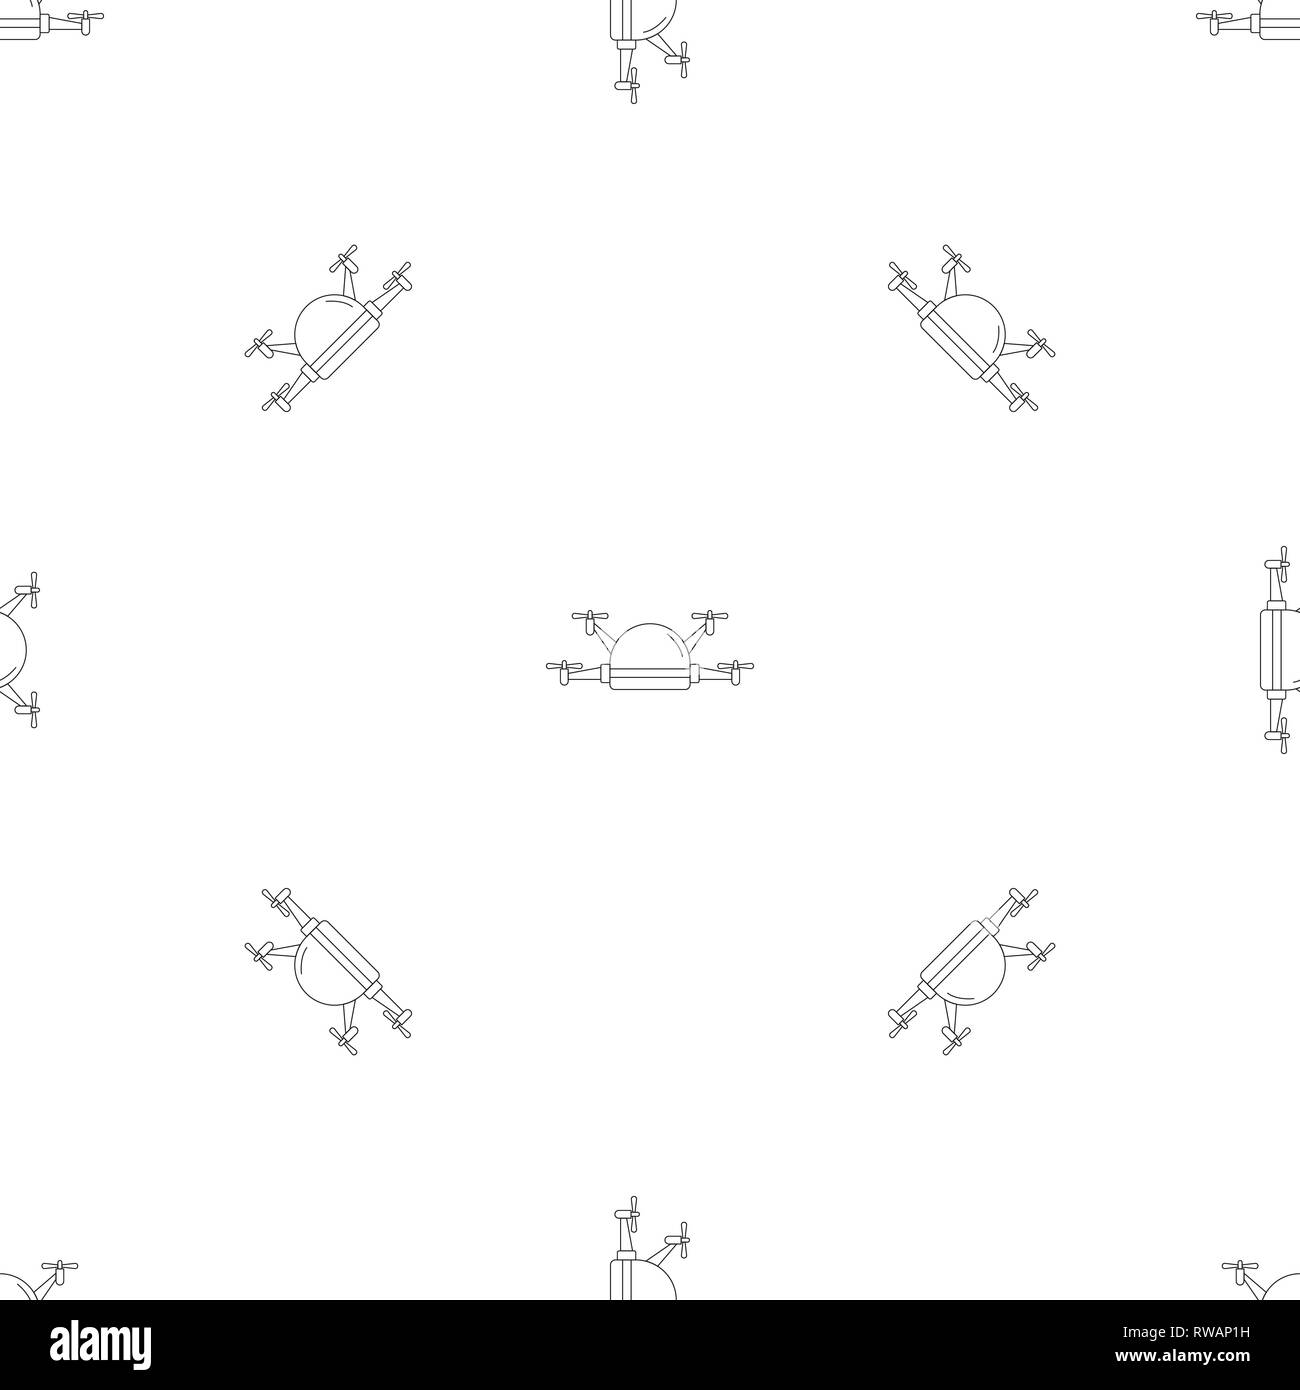 Small drone pattern seamless vector repeat geometric for any web design - Stock Image